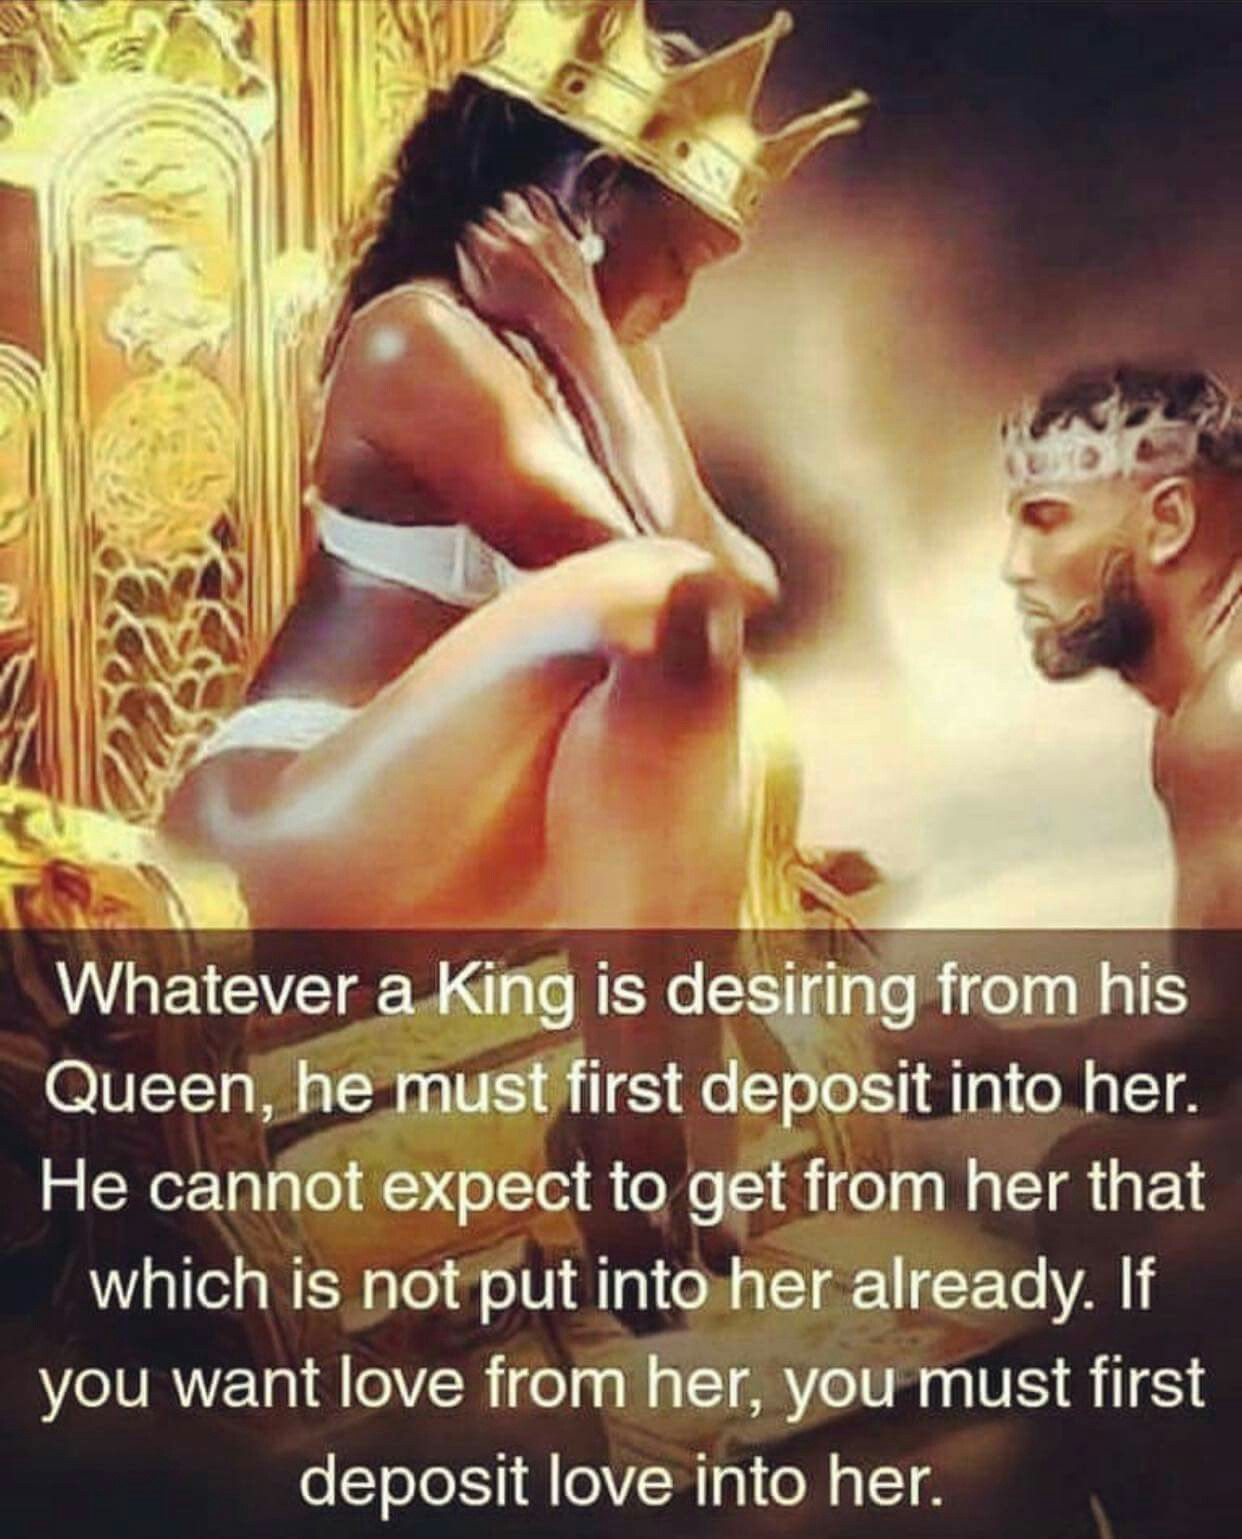 Black King And Queen Quotes : black, queen, quotes, Language, Ideas, Black, Love,, African, American